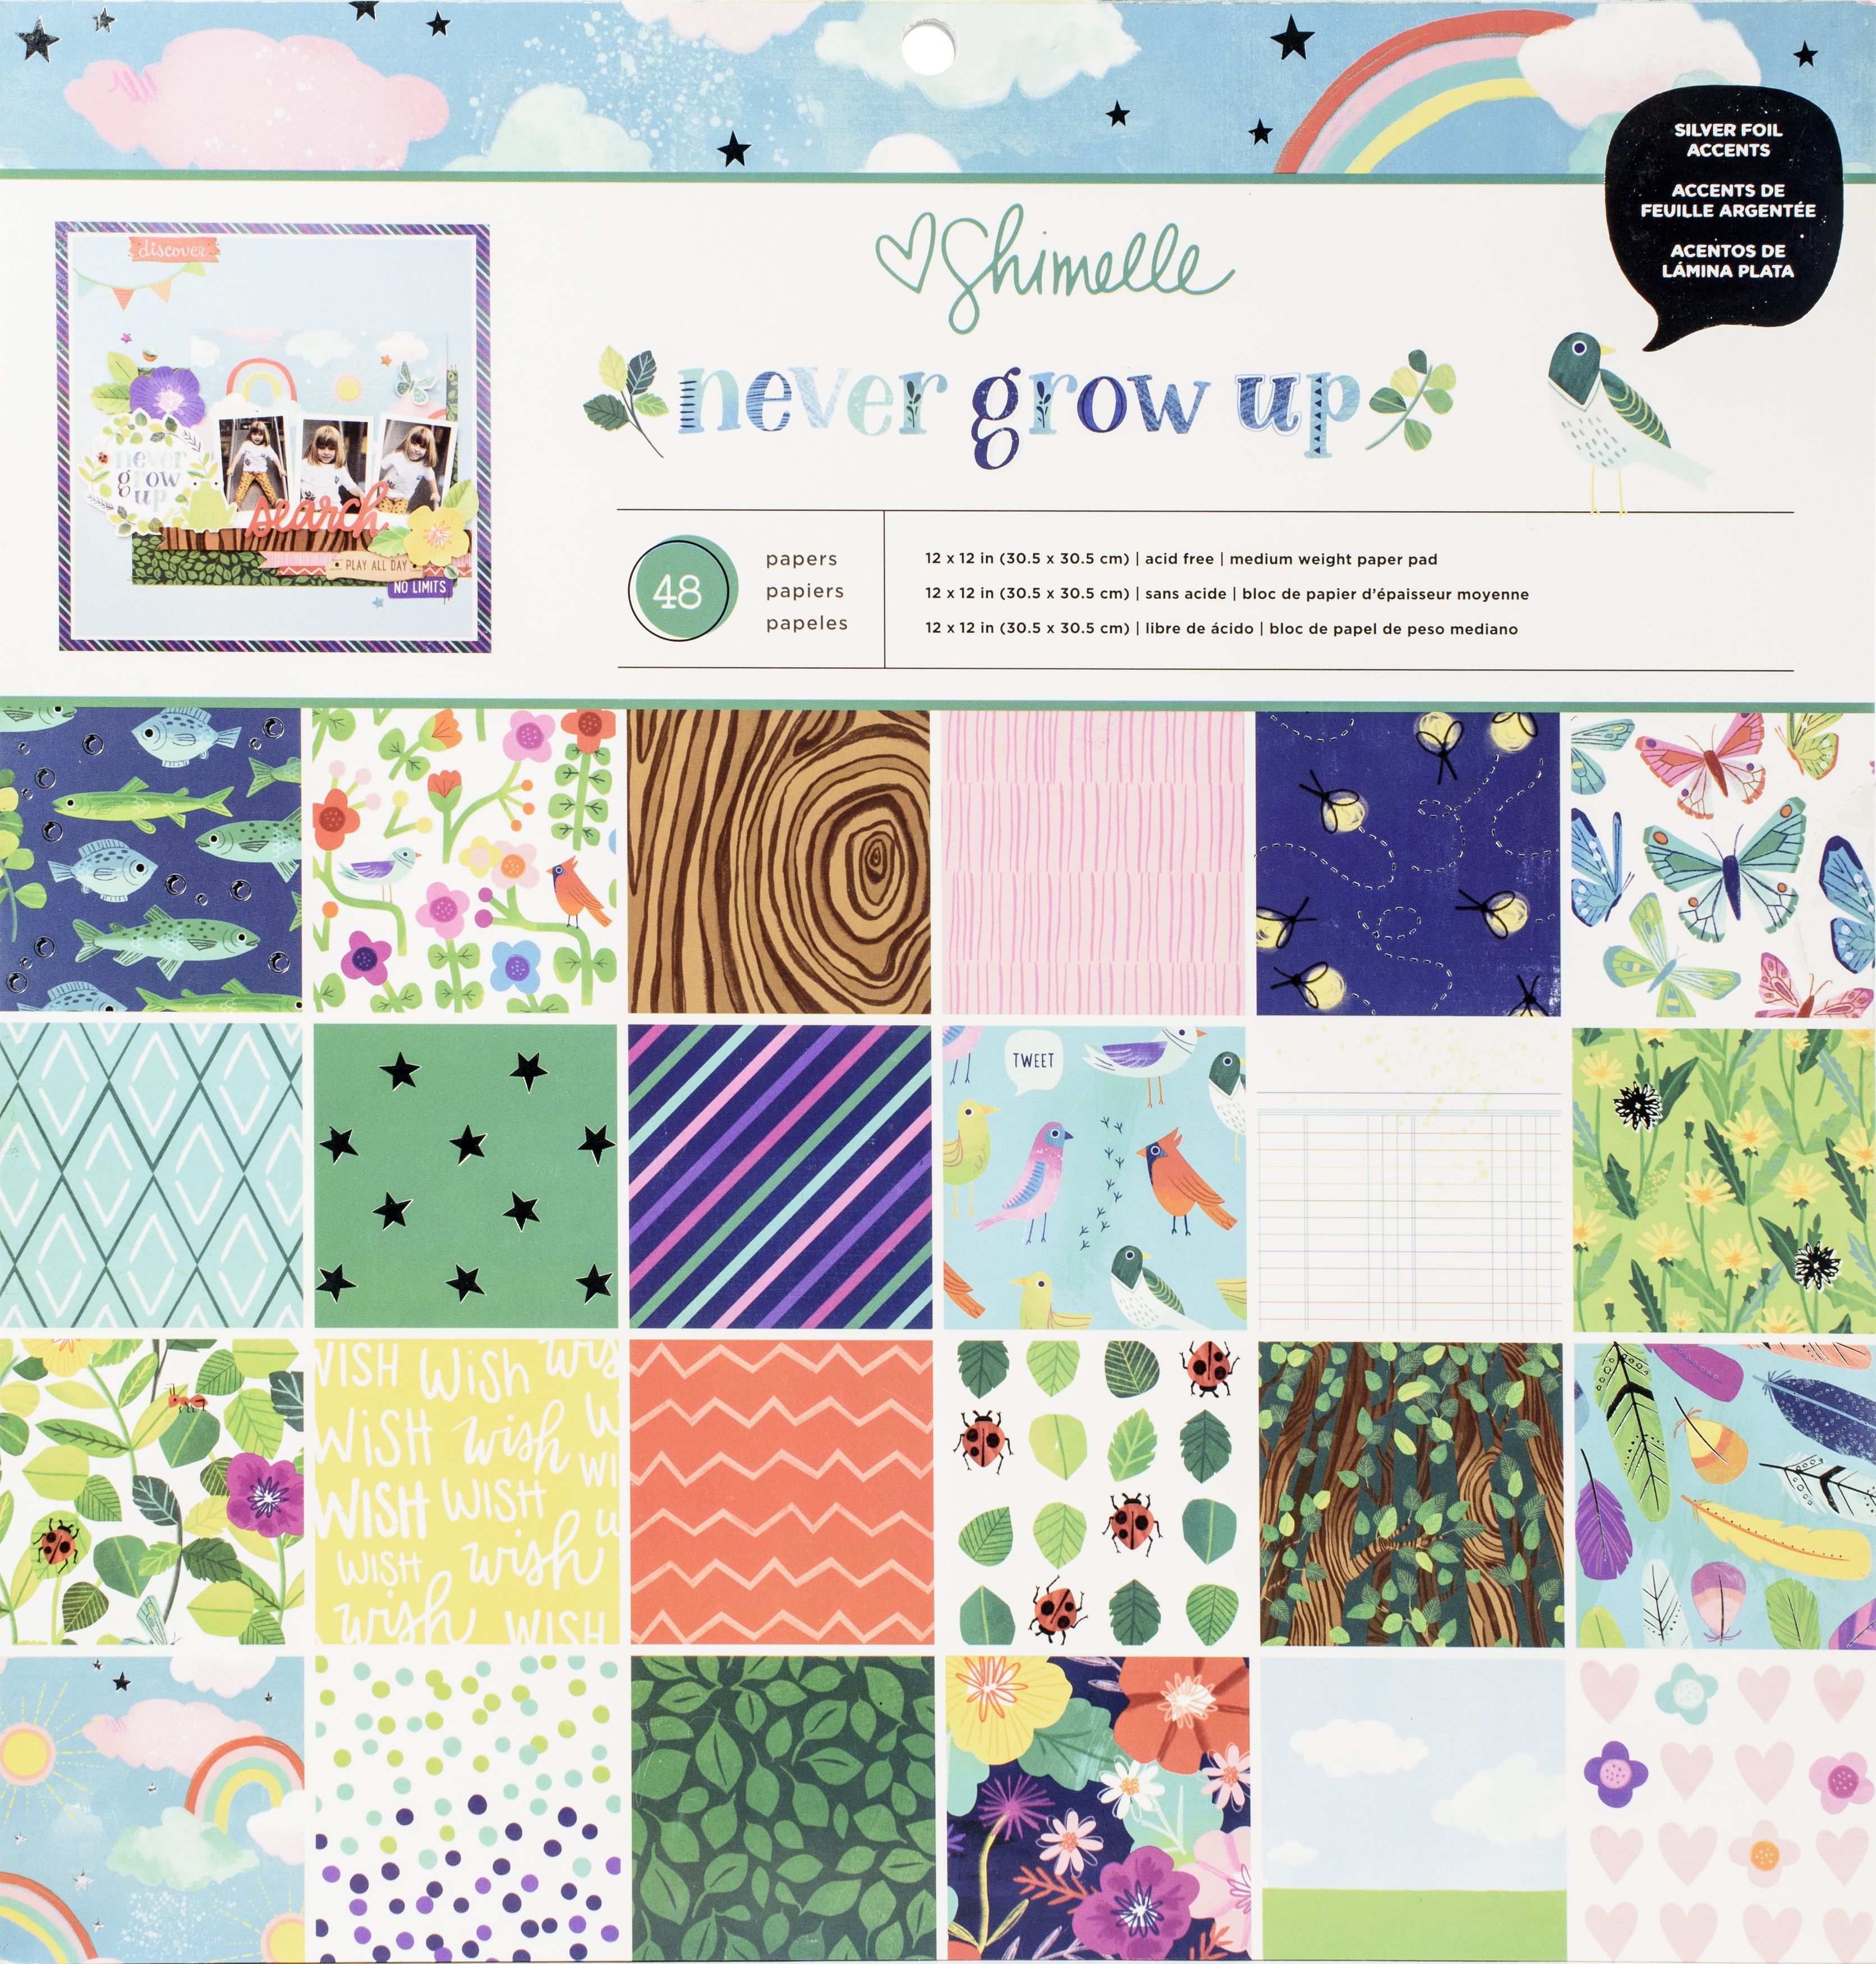 American Crafts Single-Sided Paper Pad 12X12 48/Pkg-Shimelle Never Grow Up